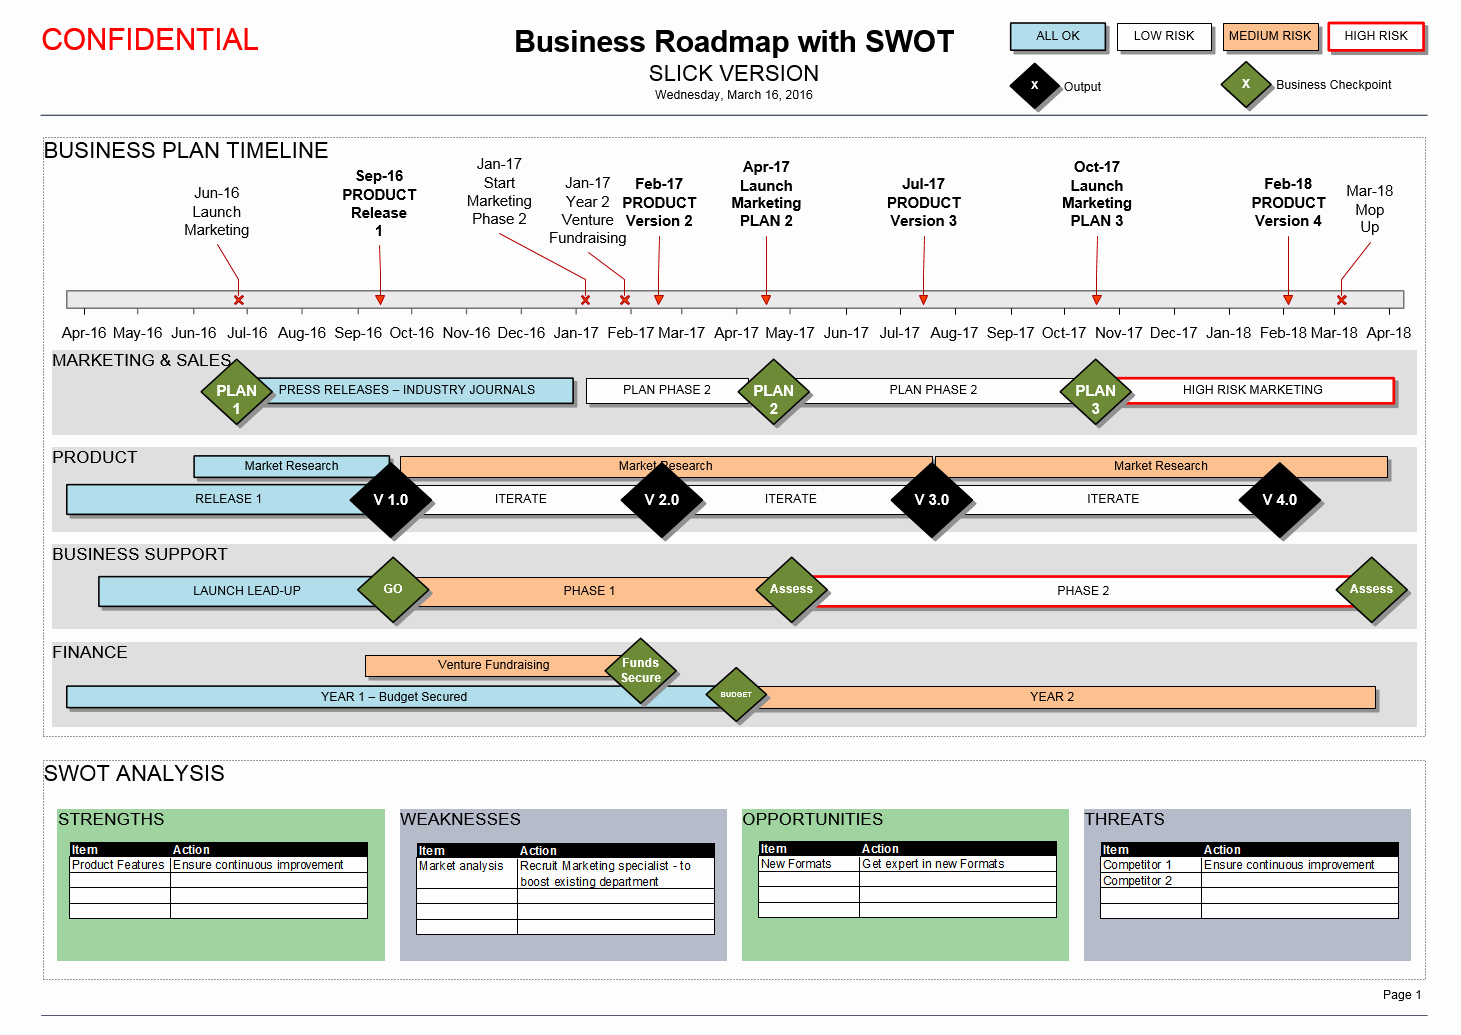 Business Plan Timeline Template Beautiful Business Roadmap with Swot & Timeline Visio Template